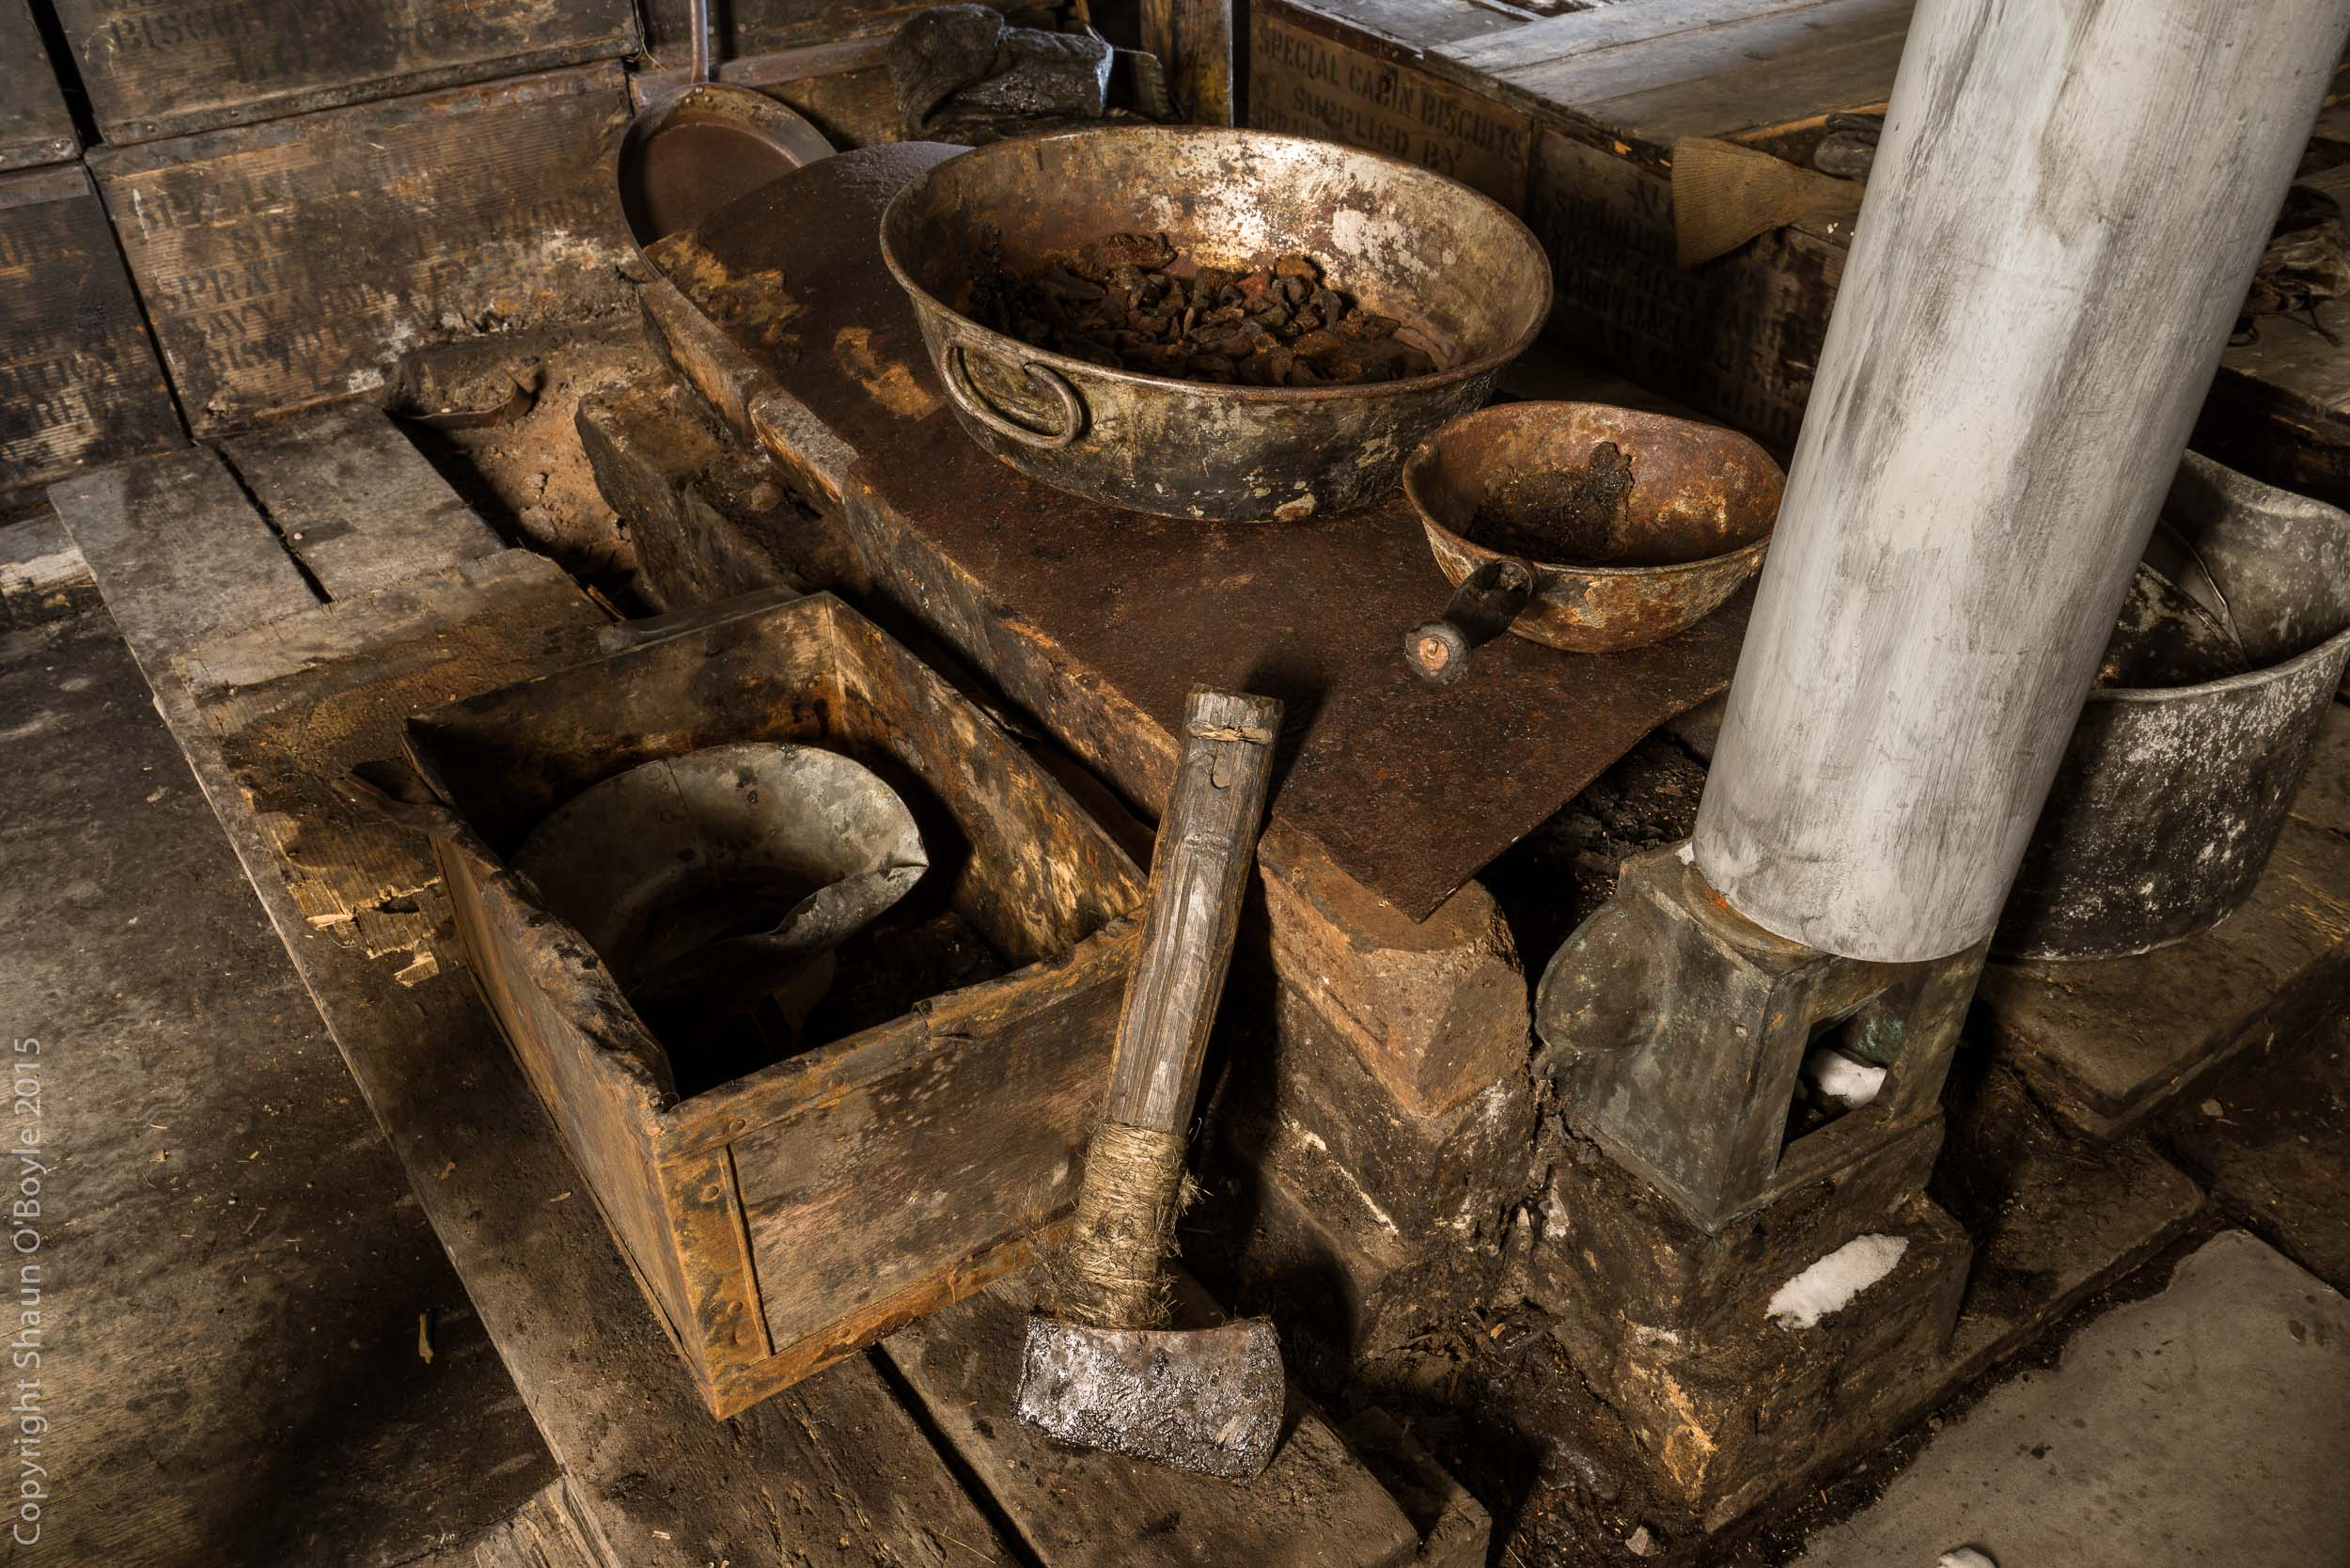 Hatchet used to chop seal blubber to use as fuel in this stove.